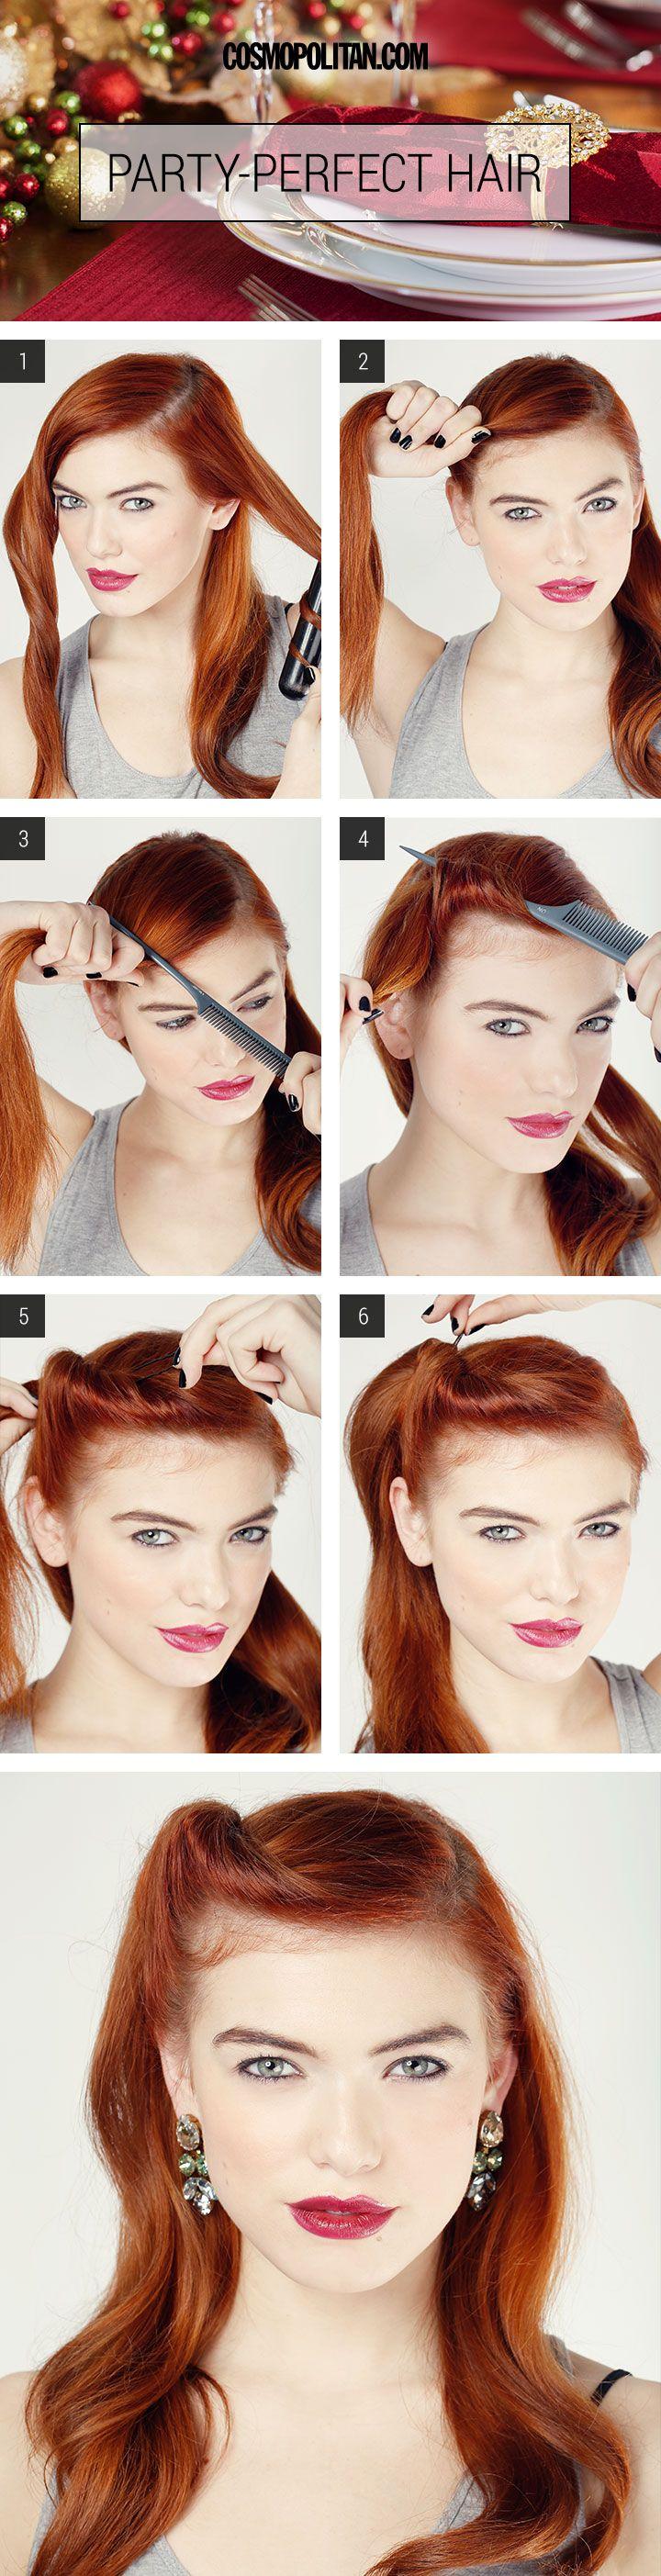 12 Easy Hairstyles You Can Do in 5 Minutes (orLess) pics